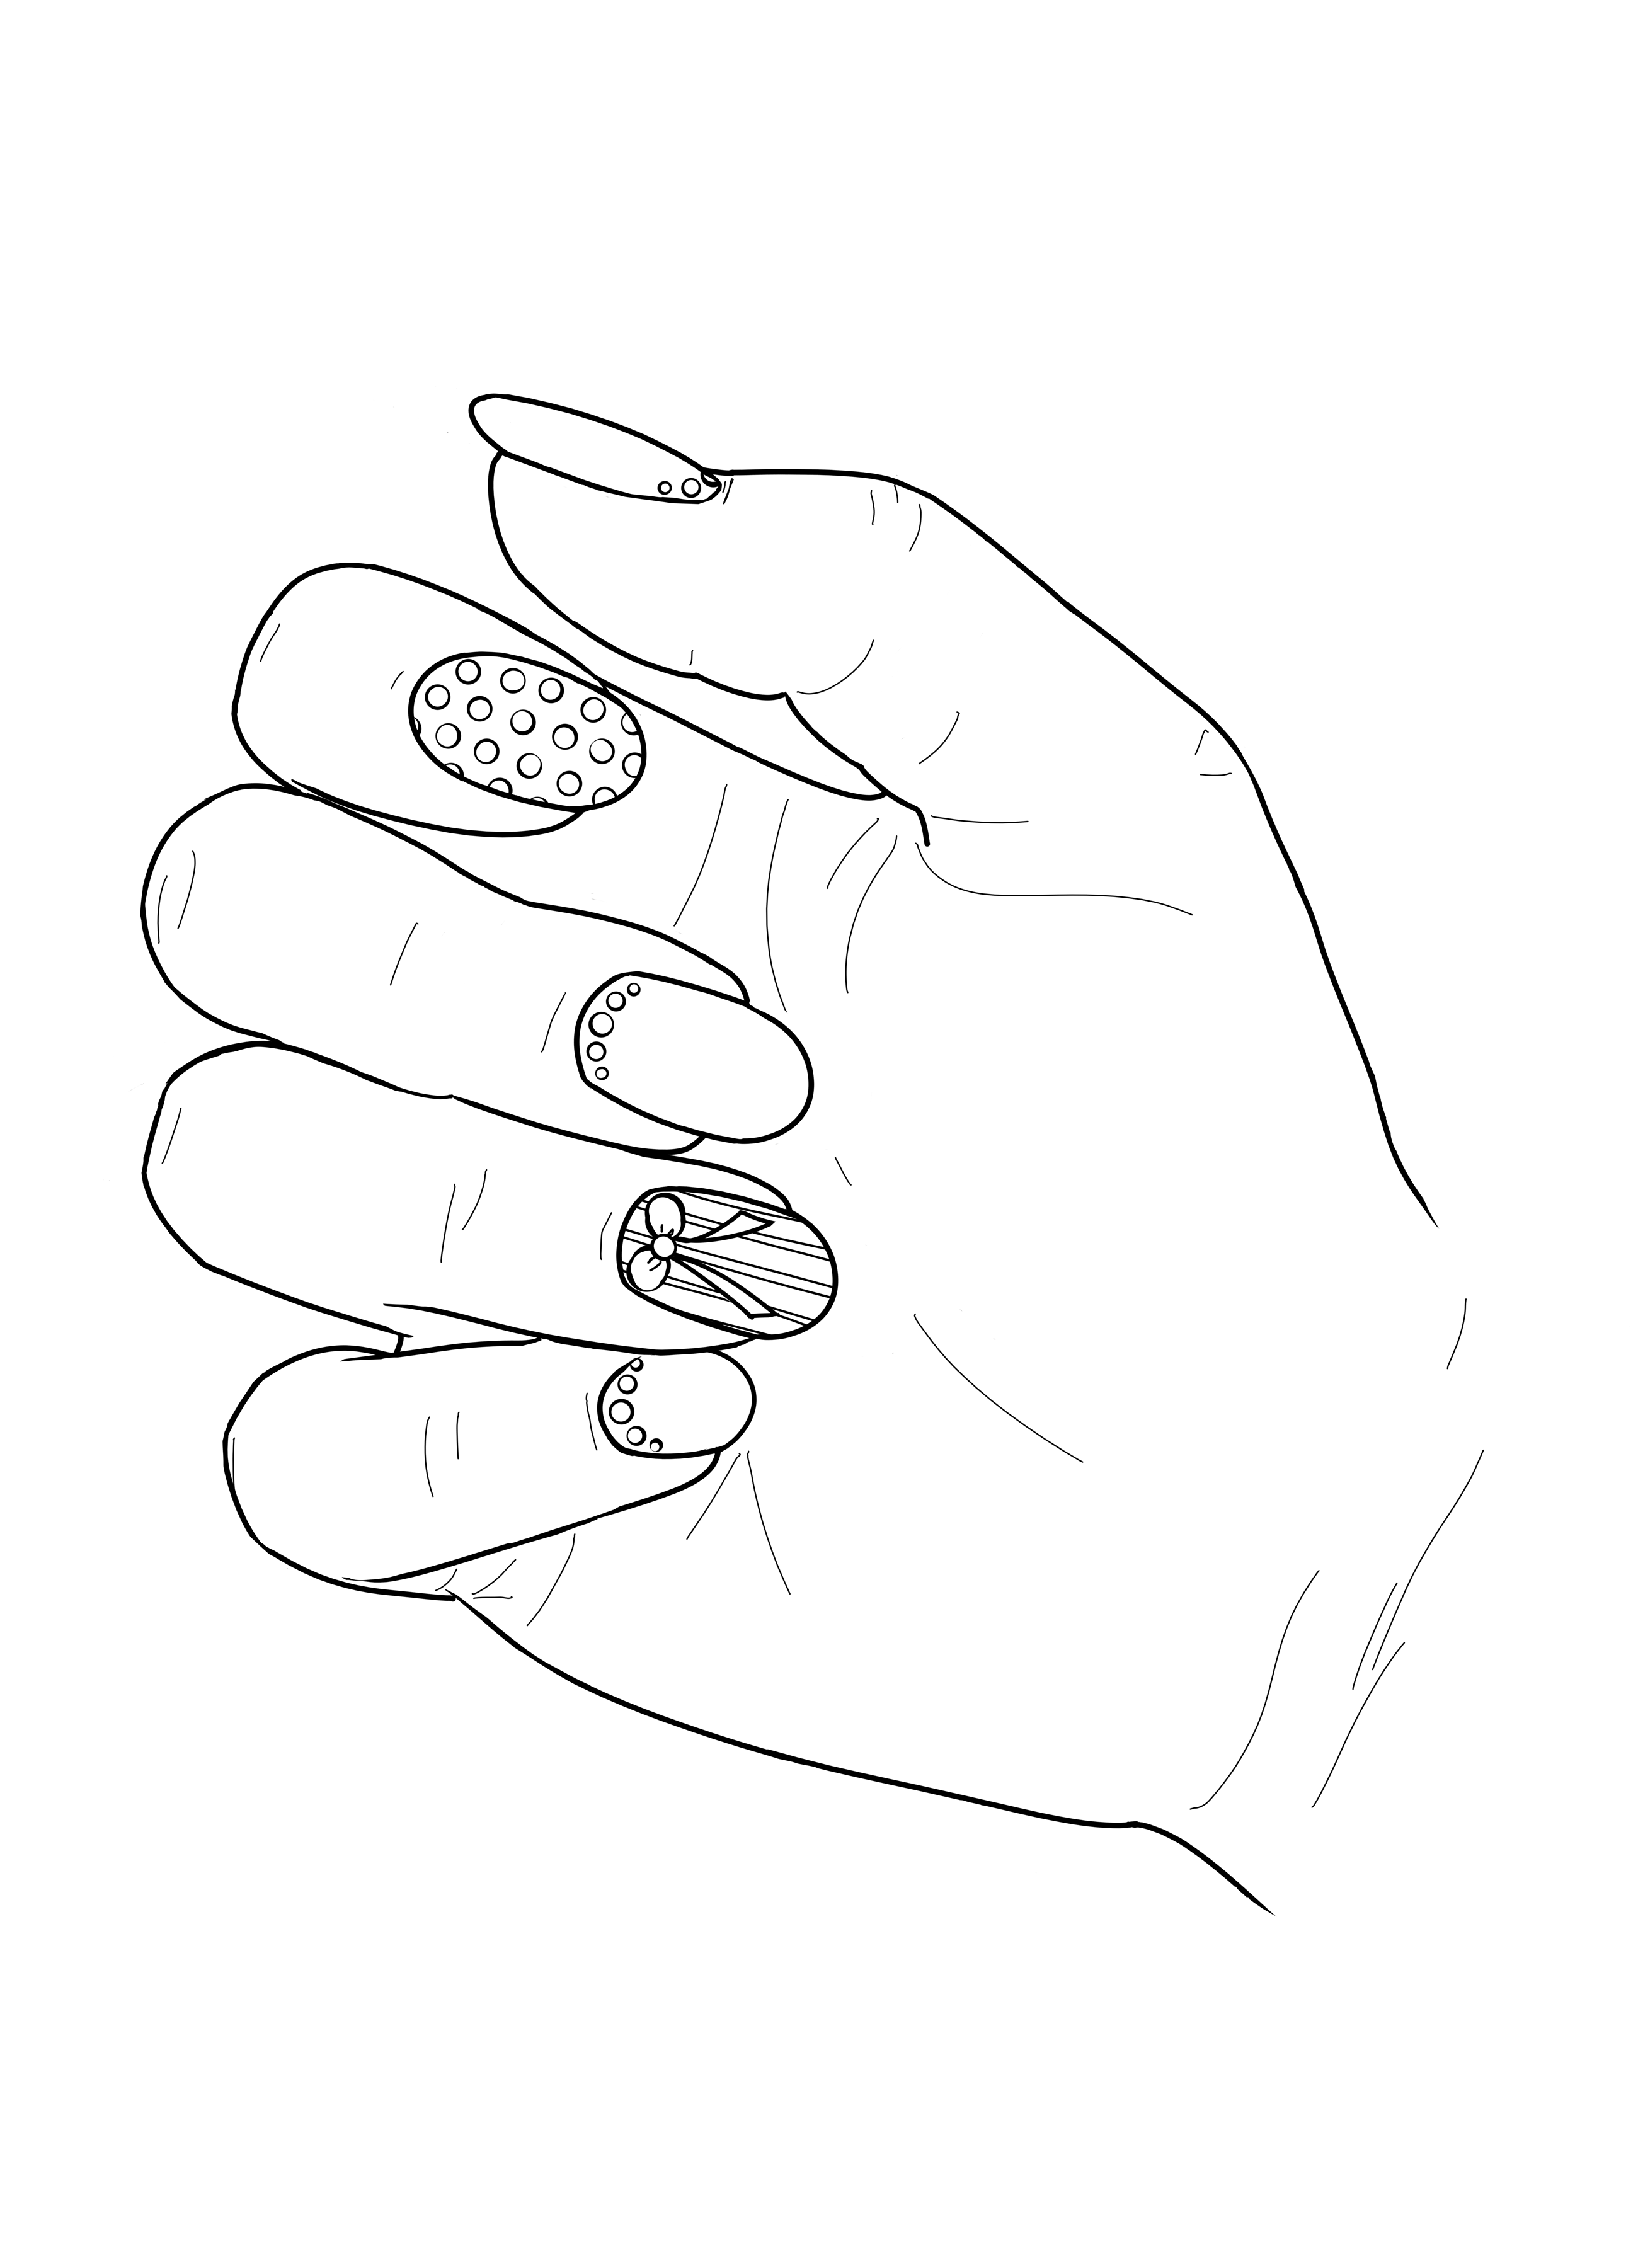 Pin On Nail Art Adult Coloring Book